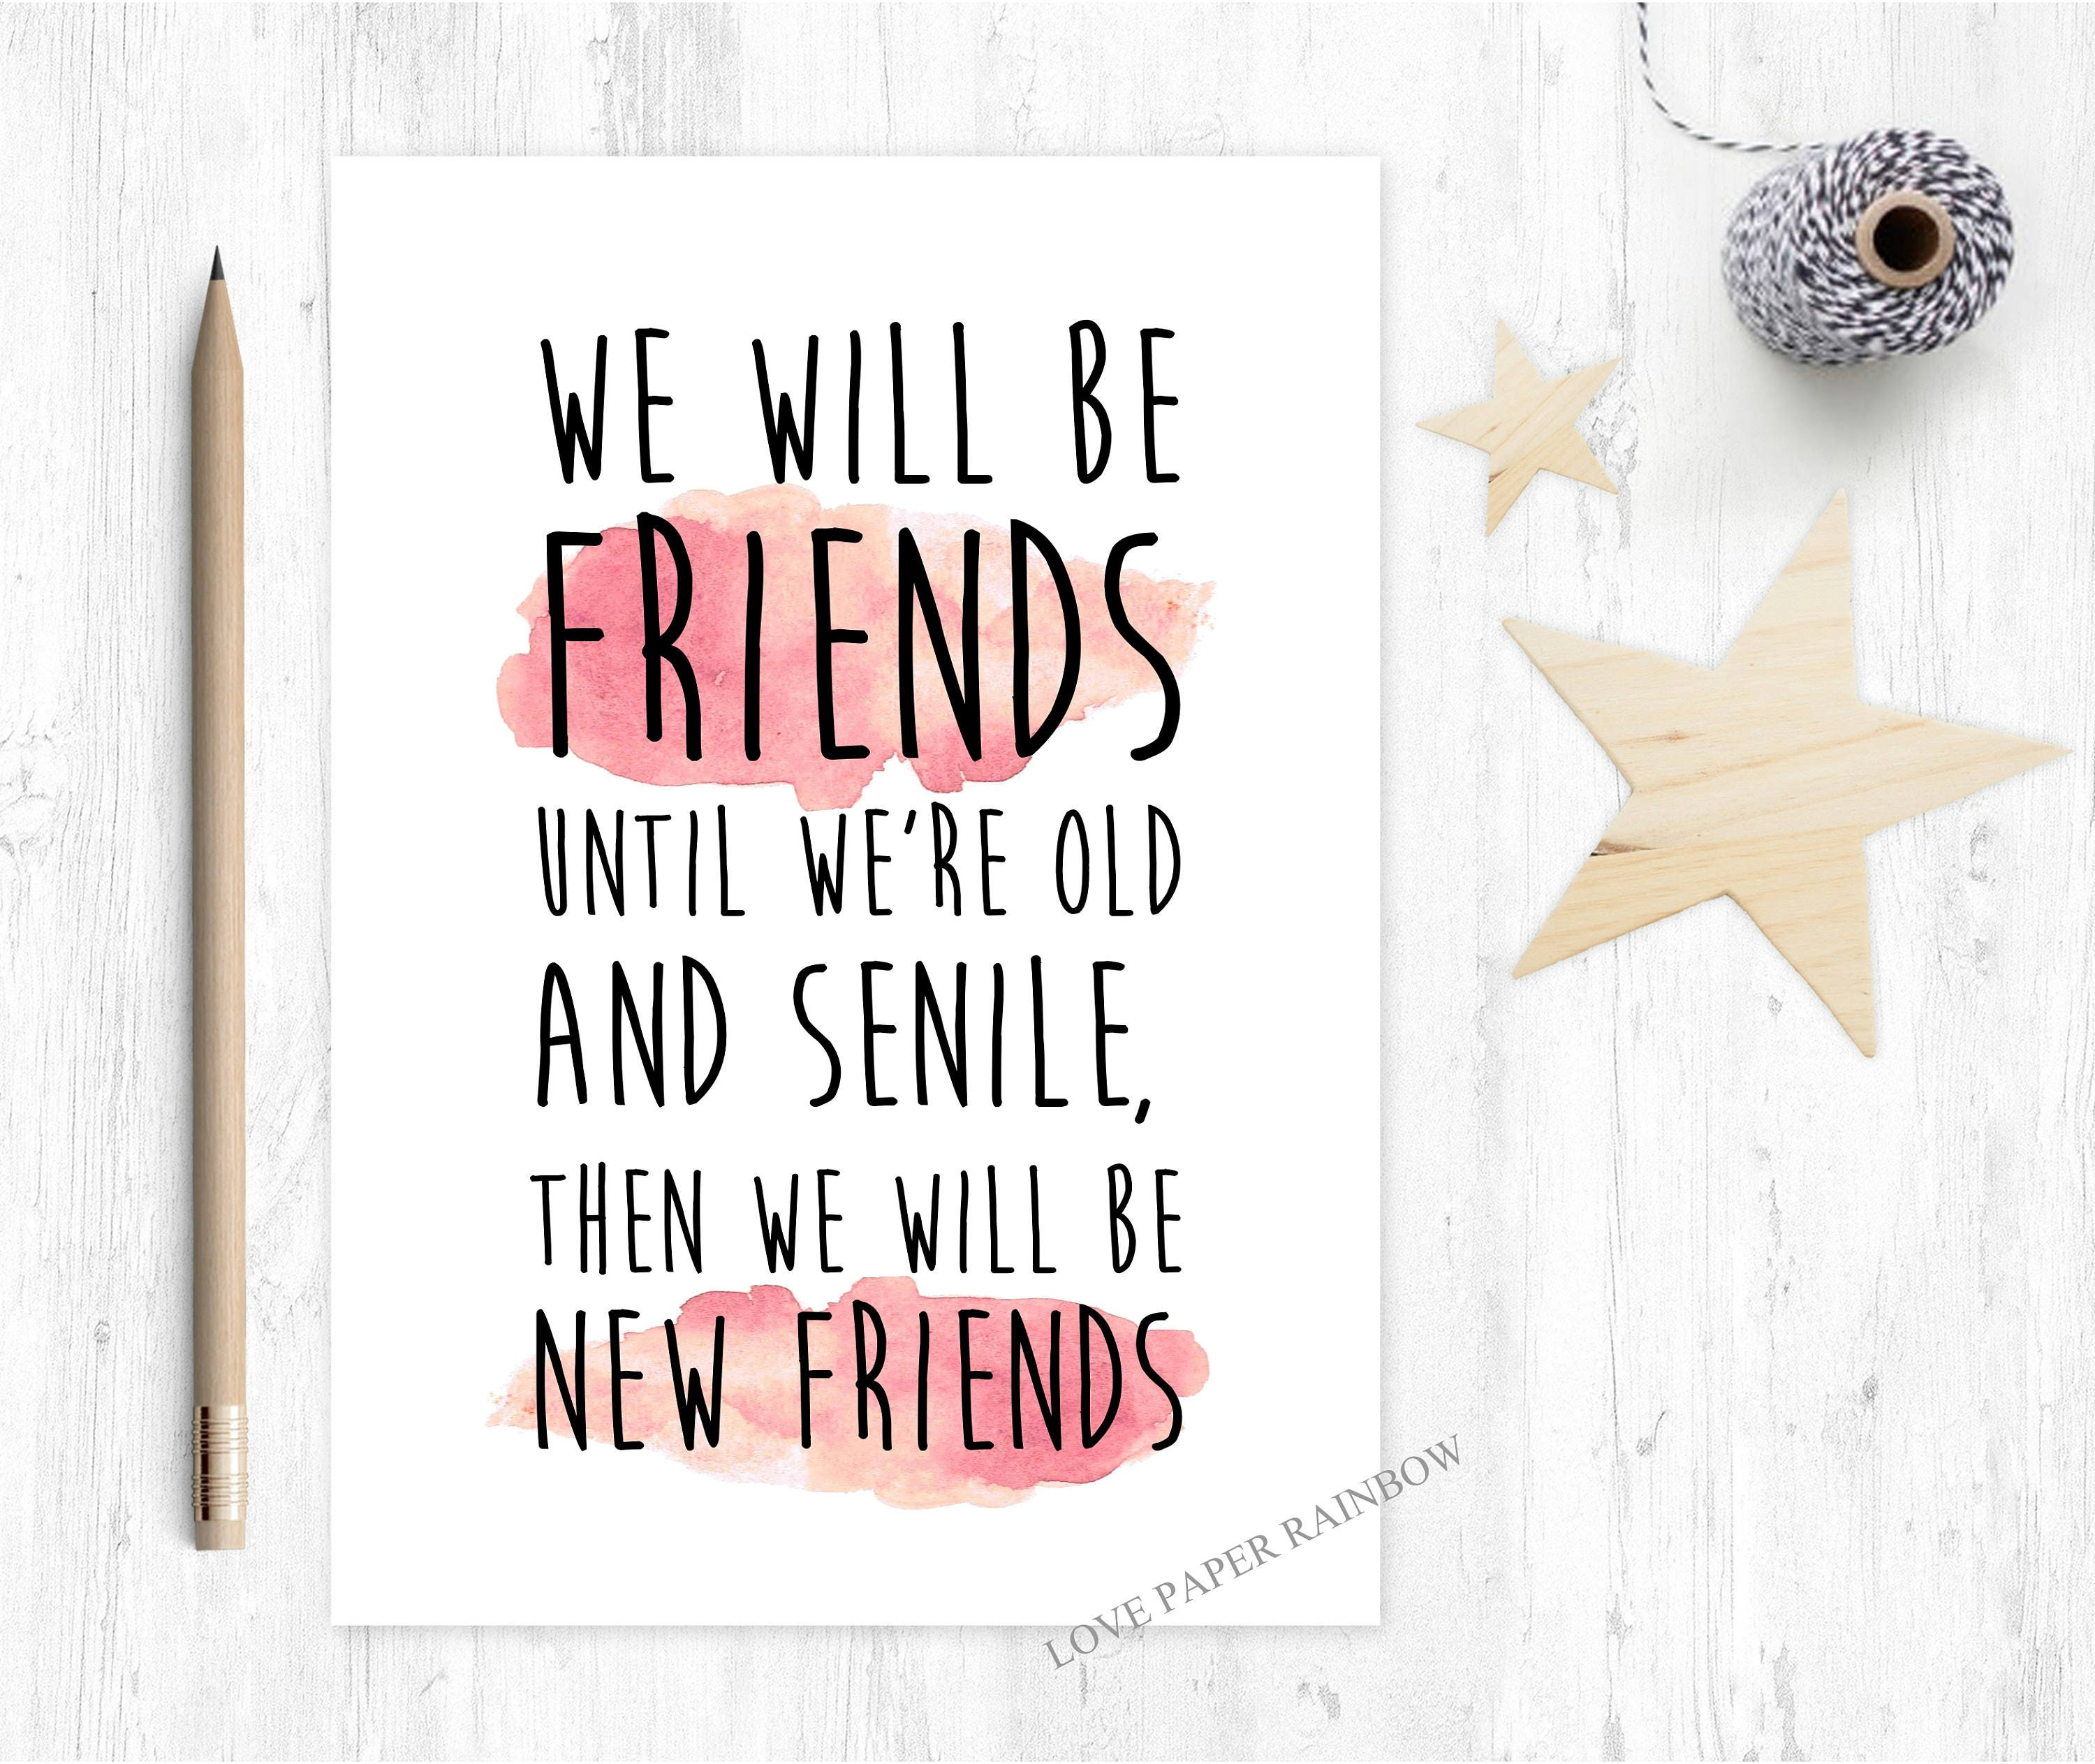 Funny friendship card funny best friend card old and senile funny friendship card funny best friend card old and senile friends forever best friend greeting card old friends kristyandbryce Image collections